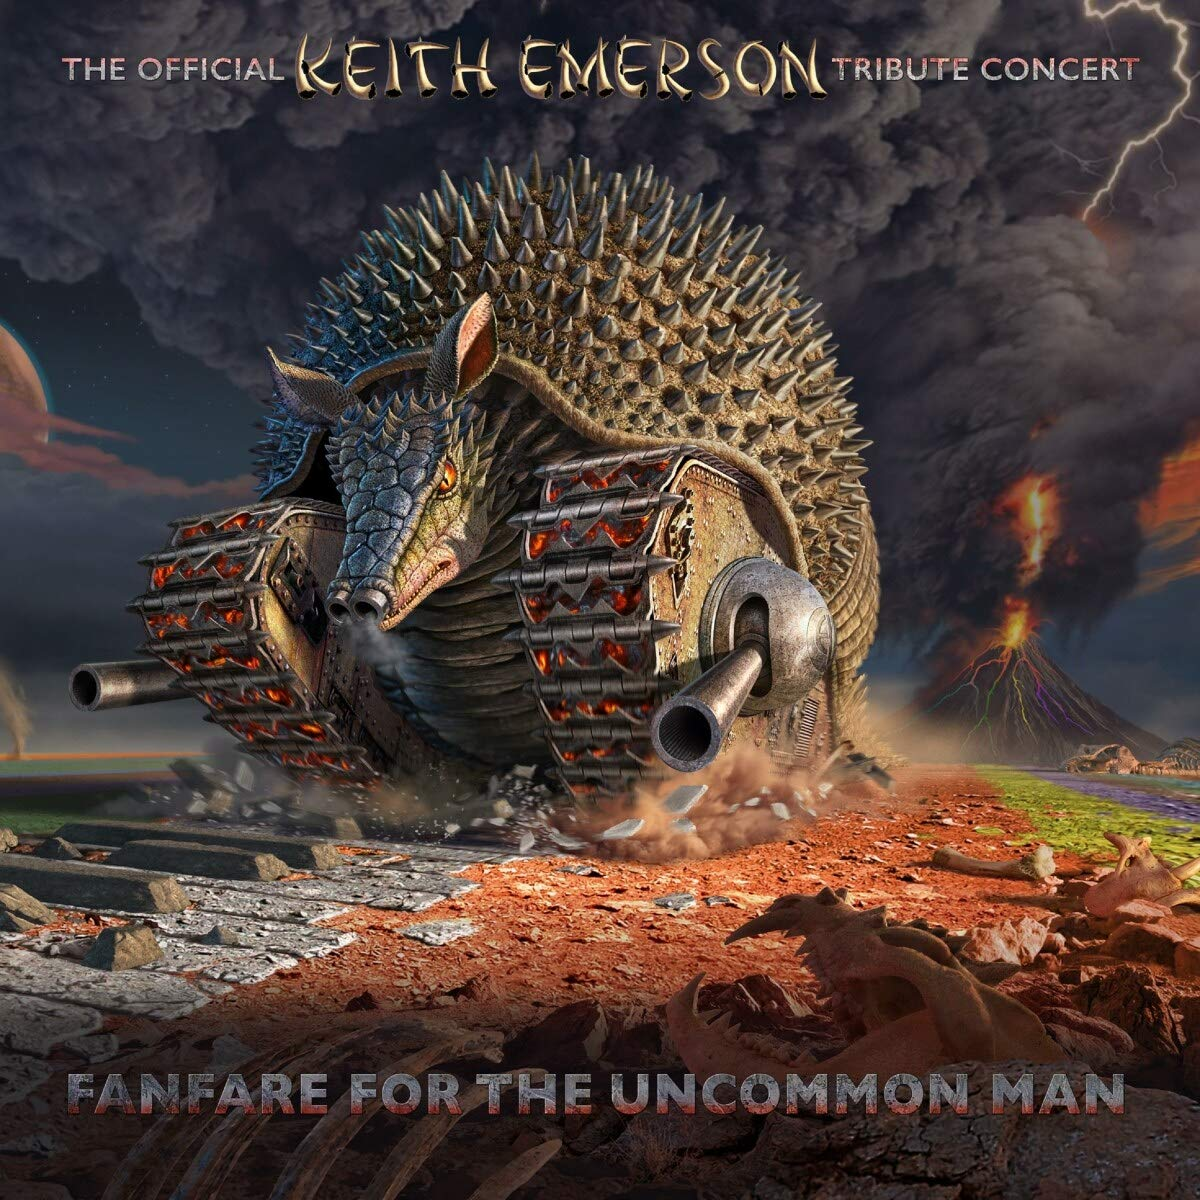 Fanfare For The Uncommon Man ~ The Official Keith Emerson Tribute Concert